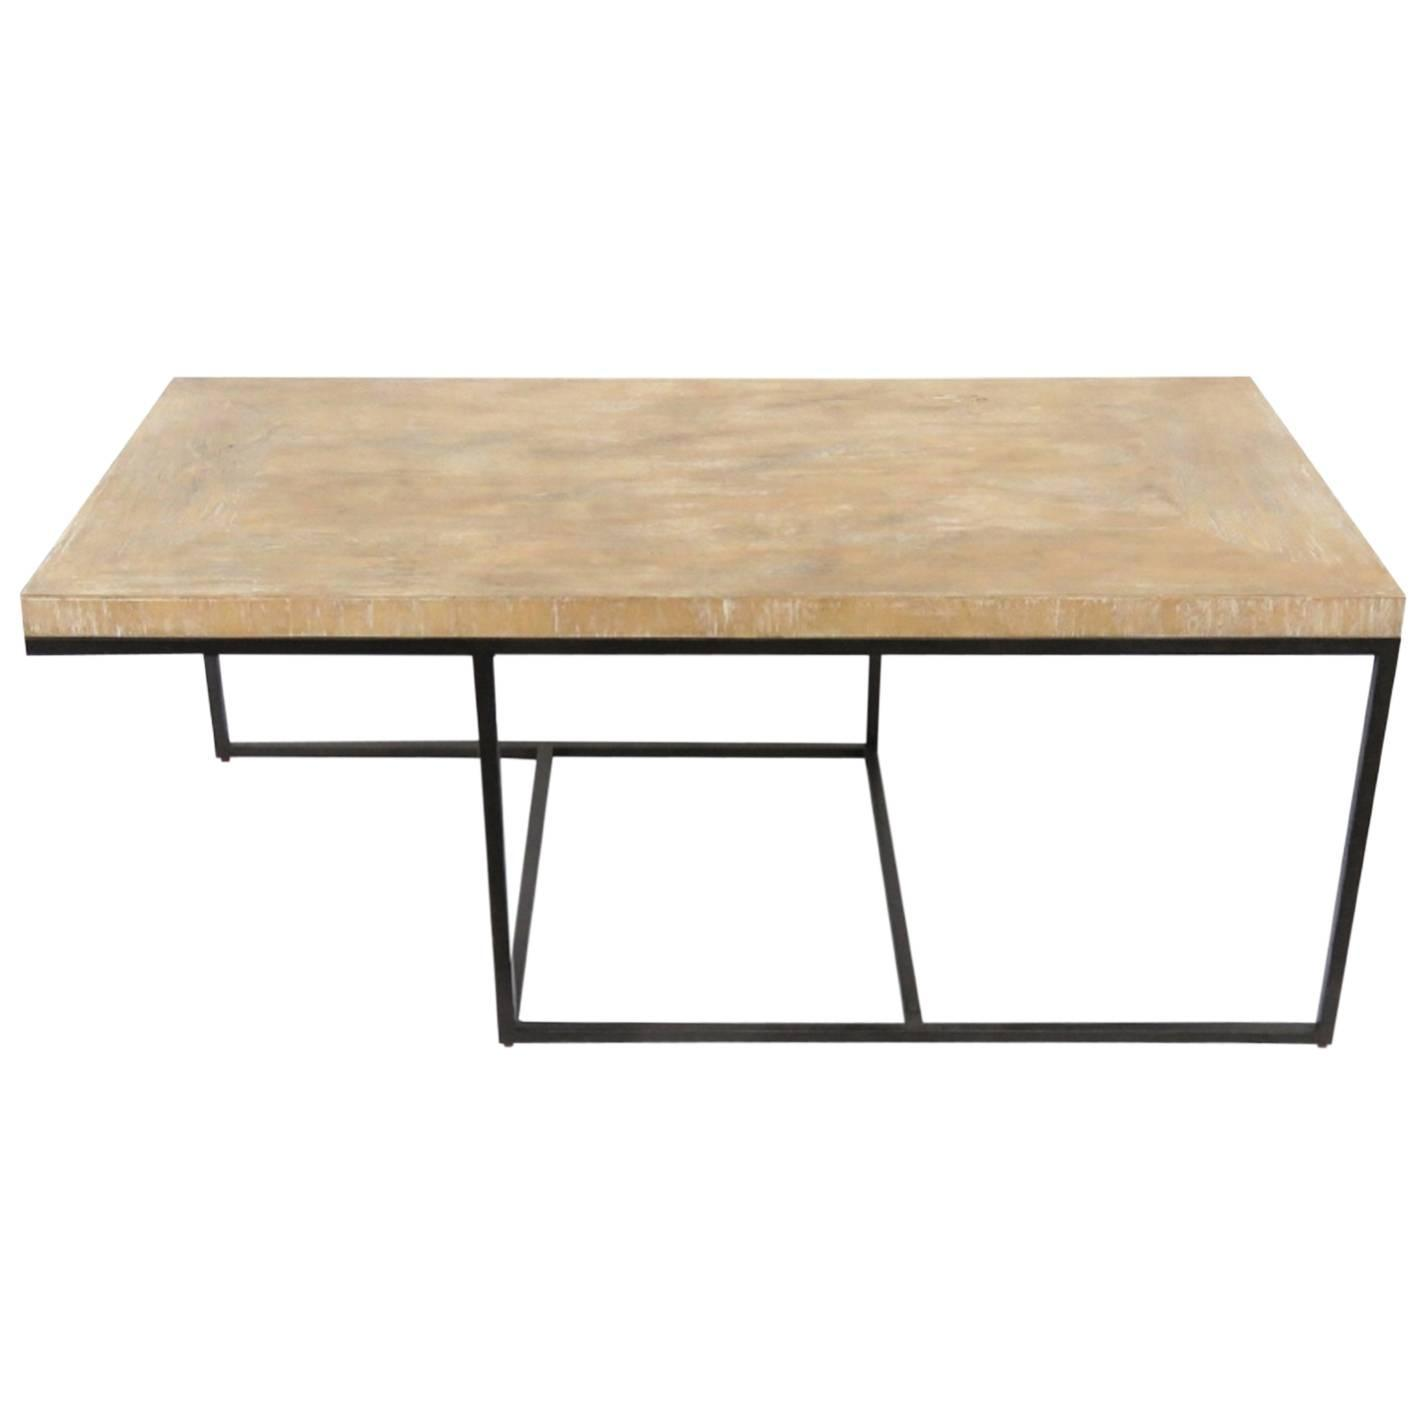 Modern Design Iron And Distressed Wood Coffee Table For